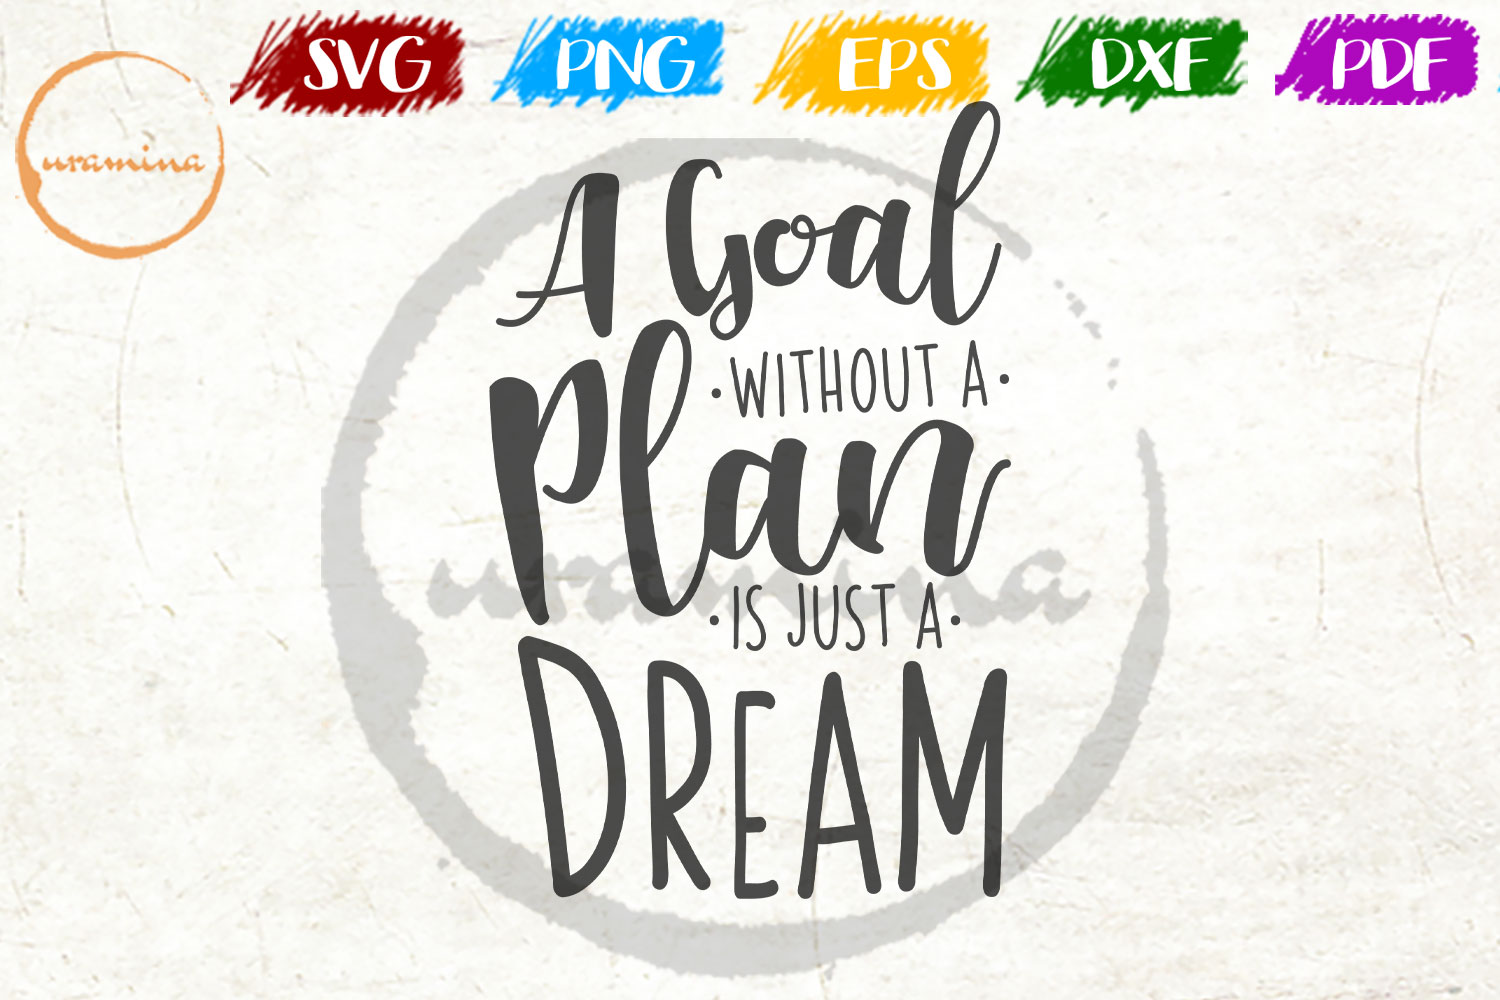 Download Free A Goal Without A Plan Is Just A Dream Graphic By Uramina for Cricut Explore, Silhouette and other cutting machines.